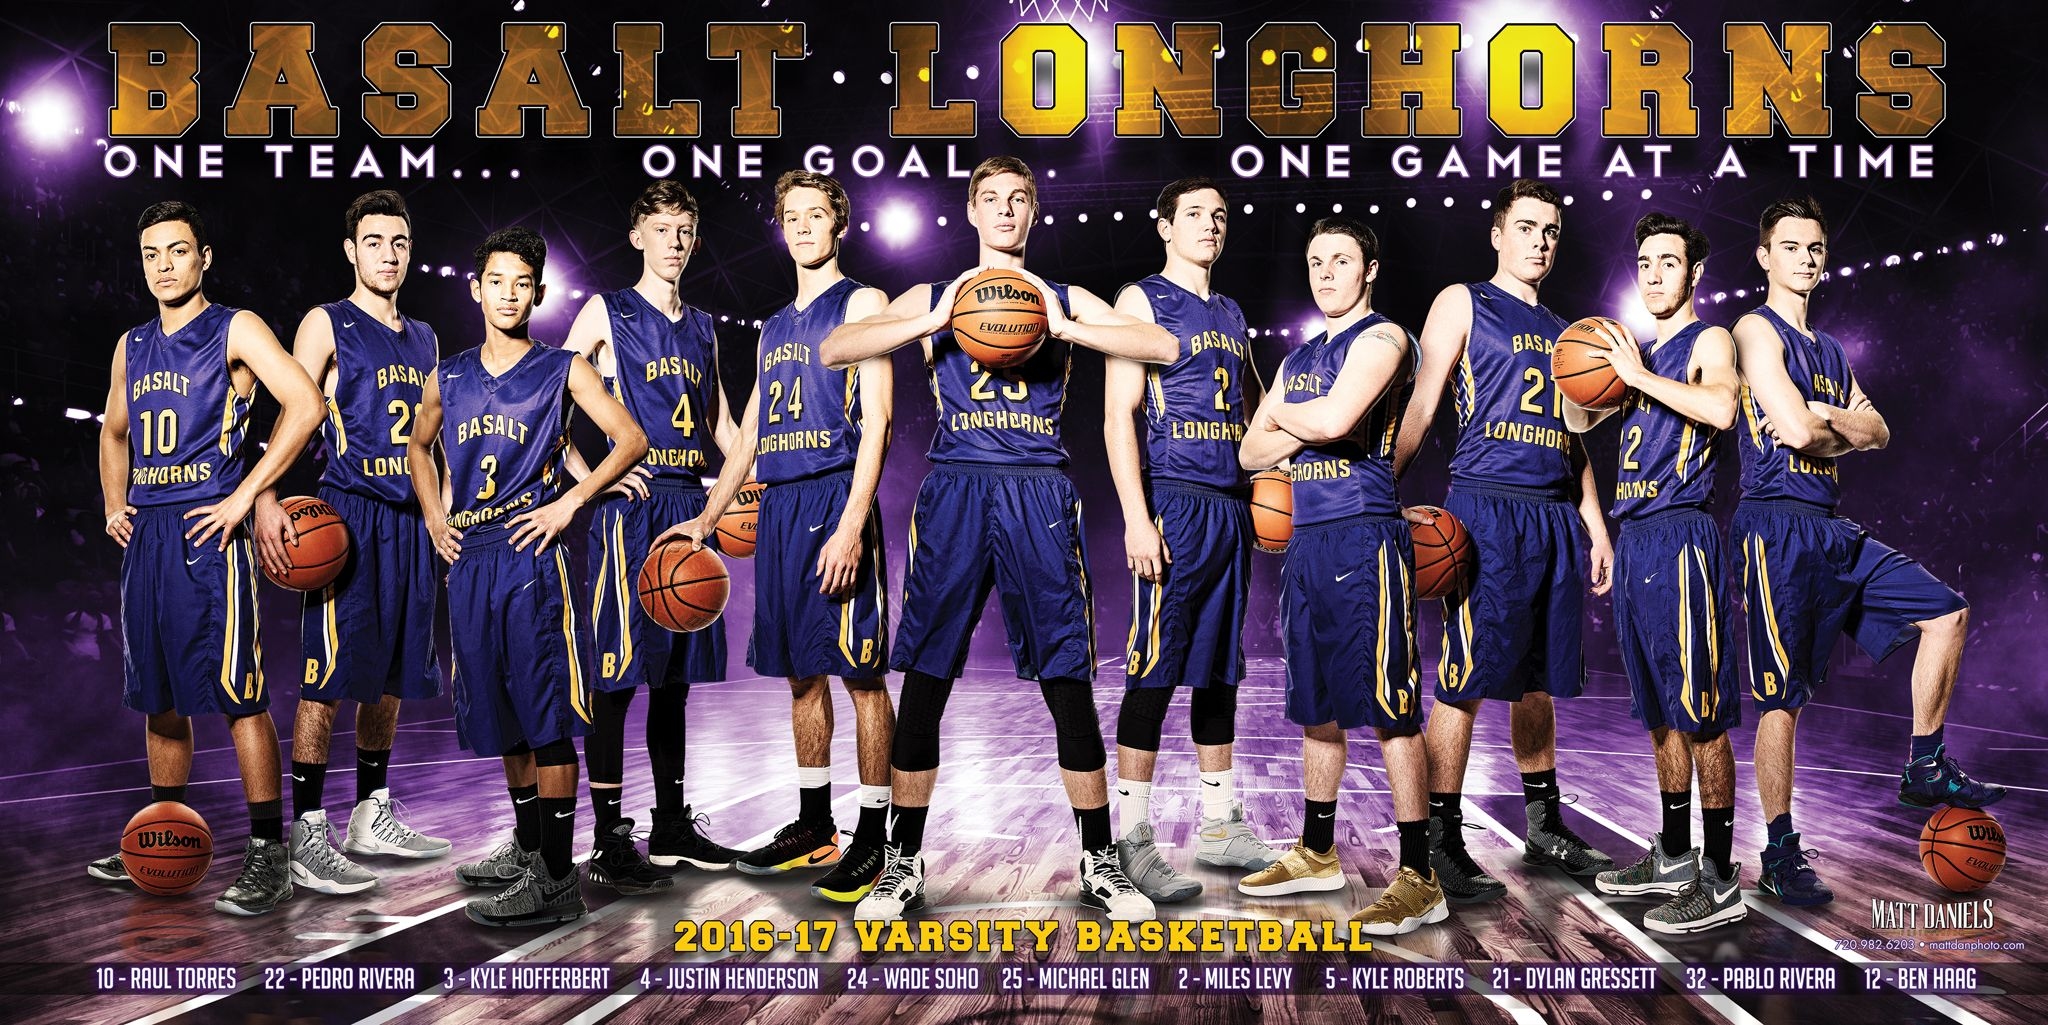 Photography And Banner Design For The 2016 17 Basalt Boys